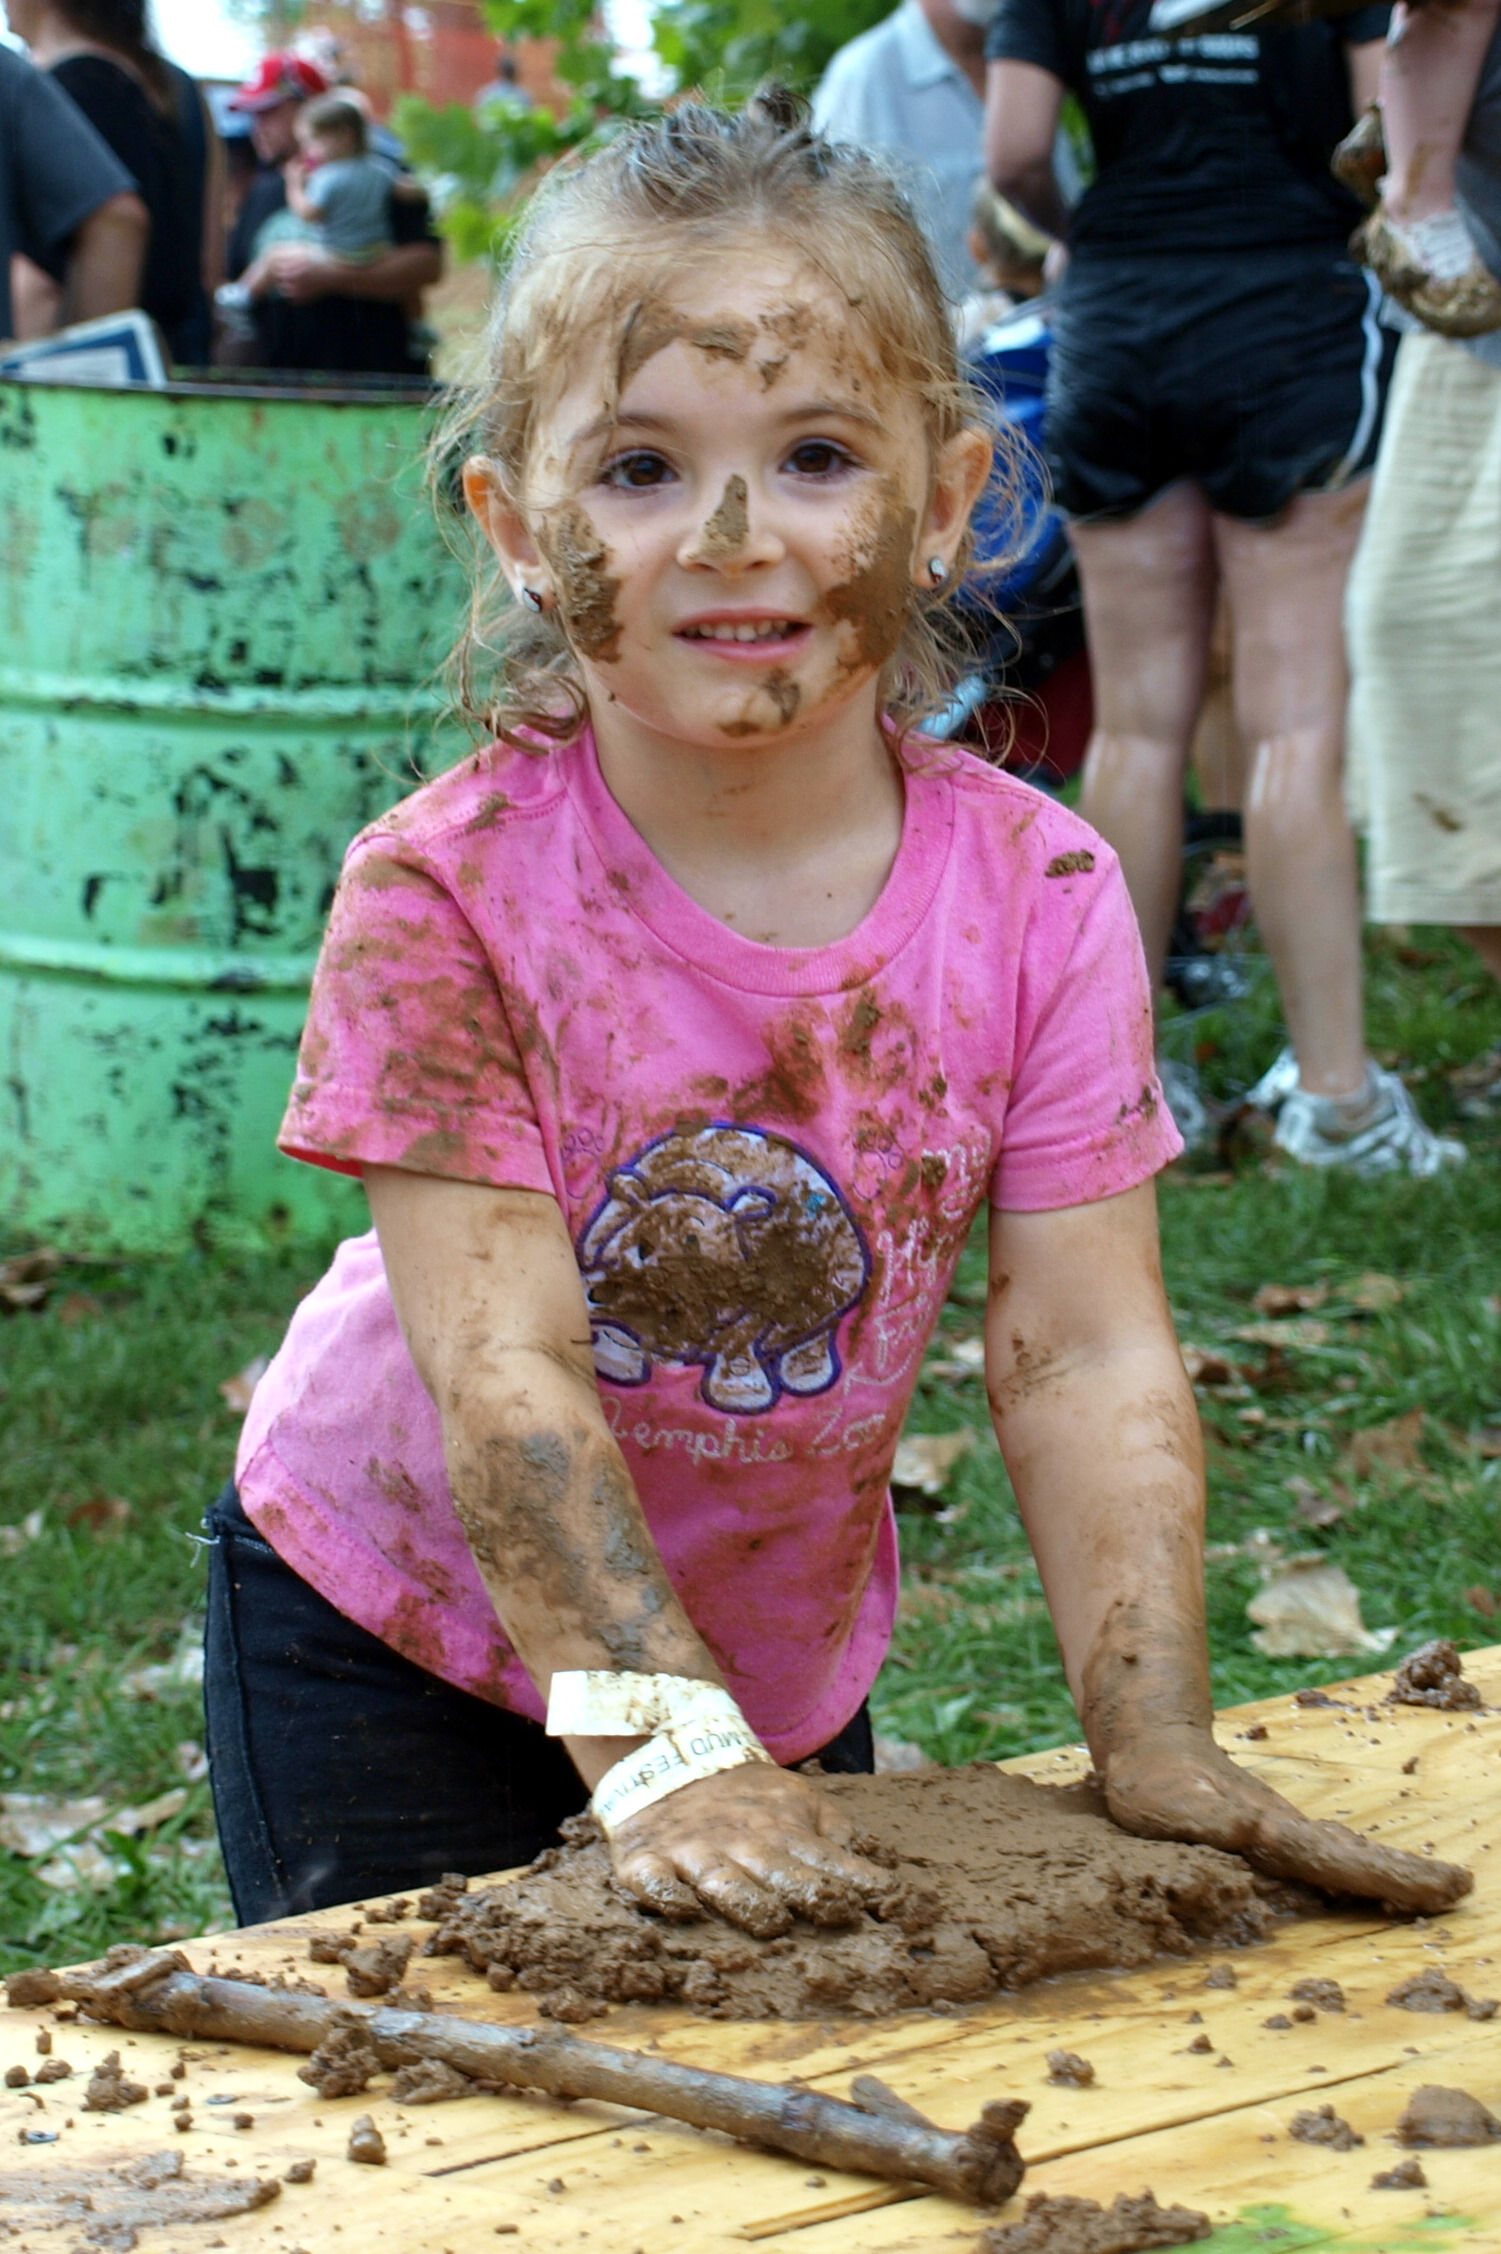 Girl making a mudpie